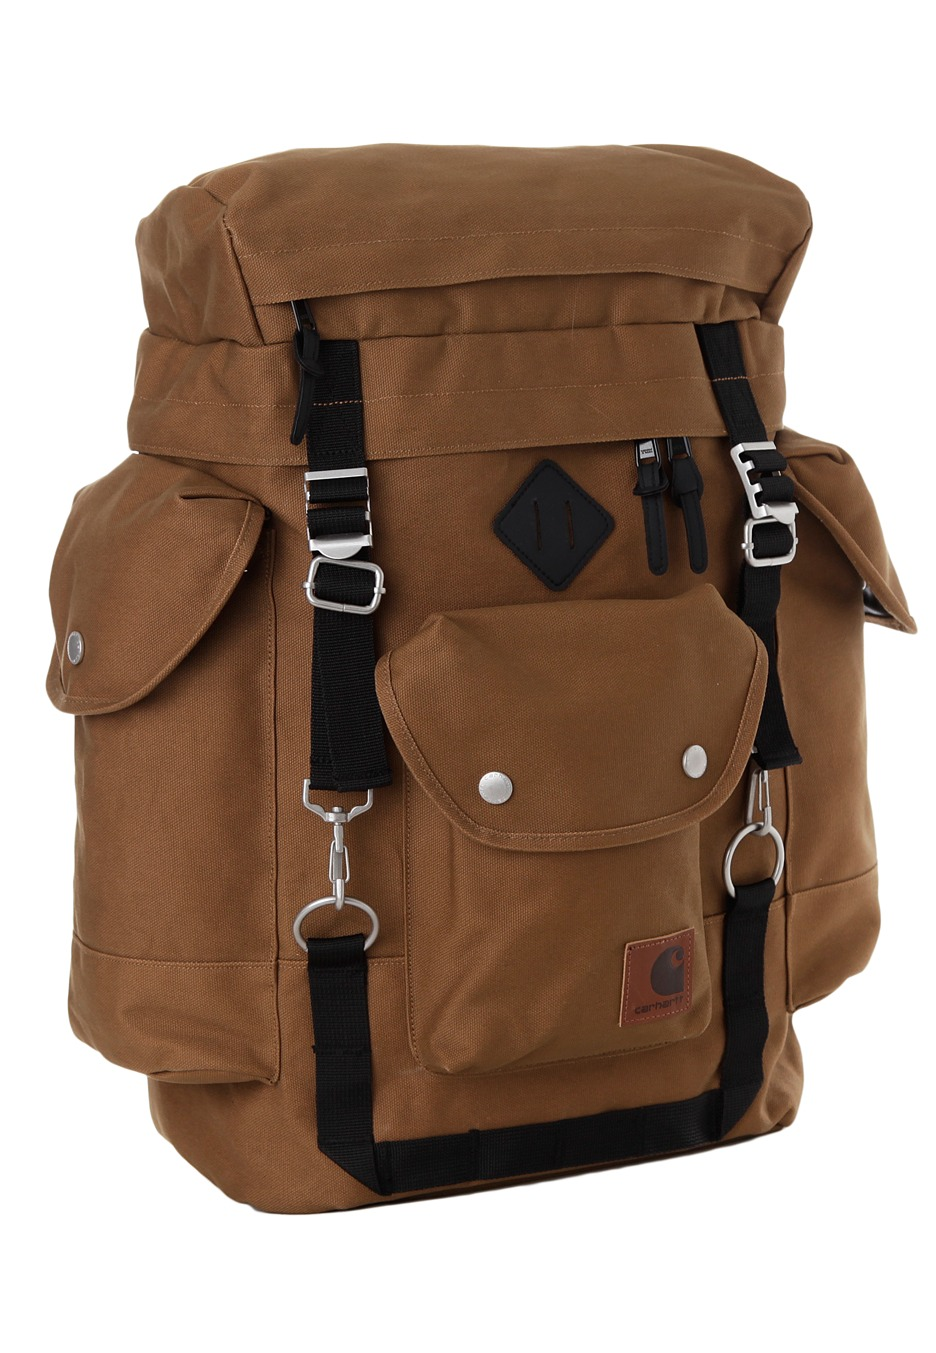 Carhartt WIP - Files Dearborn Hamilton Brown - Backpack - Streetwear Shop -  Impericon.com Worldwide